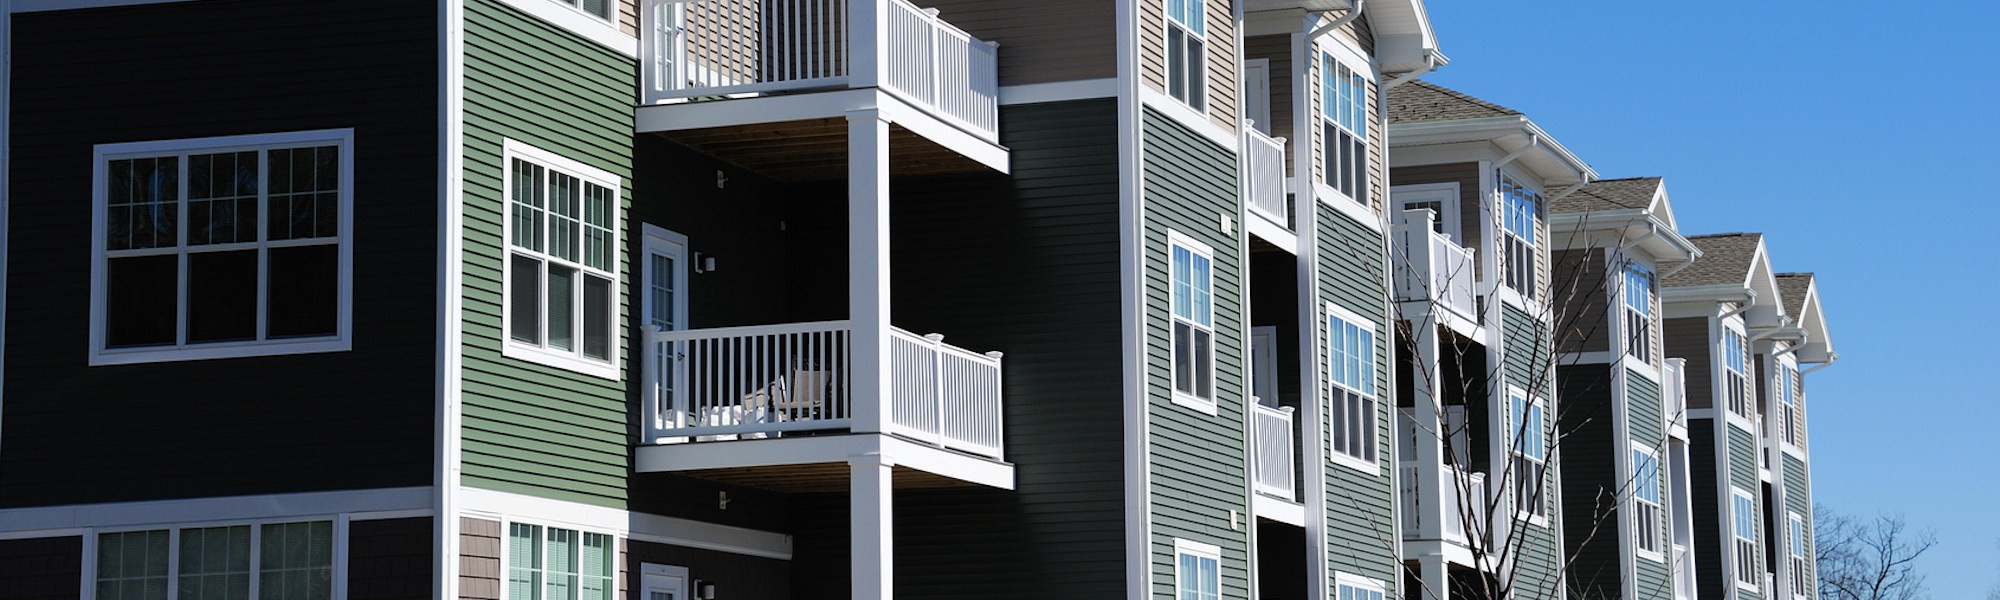 Apartment Complexes and Homeowners Associations